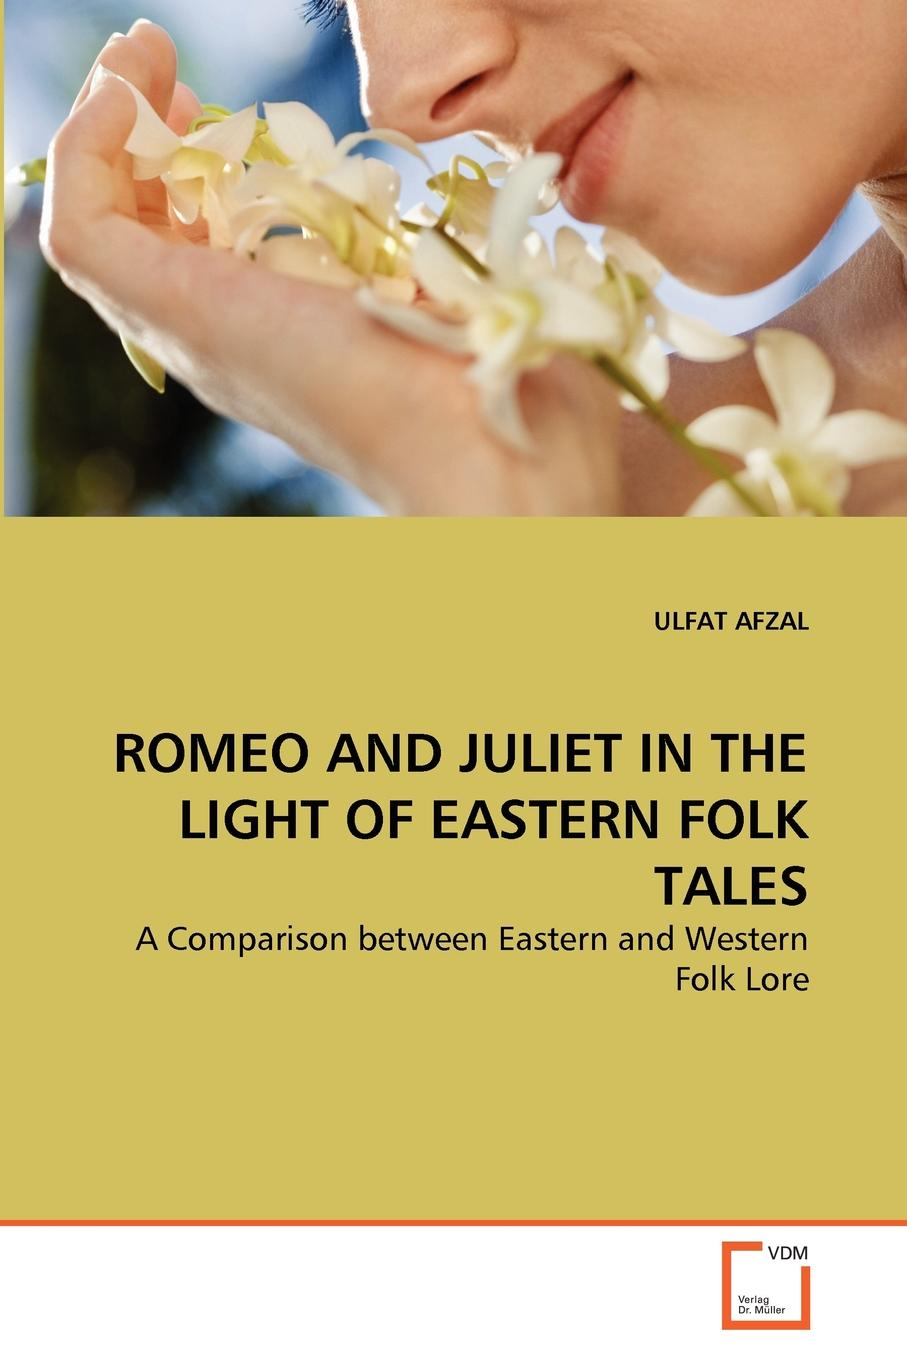 ULFAT AFZAL ROMEO AND JULIET IN THE LIGHT OF EASTERN FOLK TALES цена в Москве и Питере